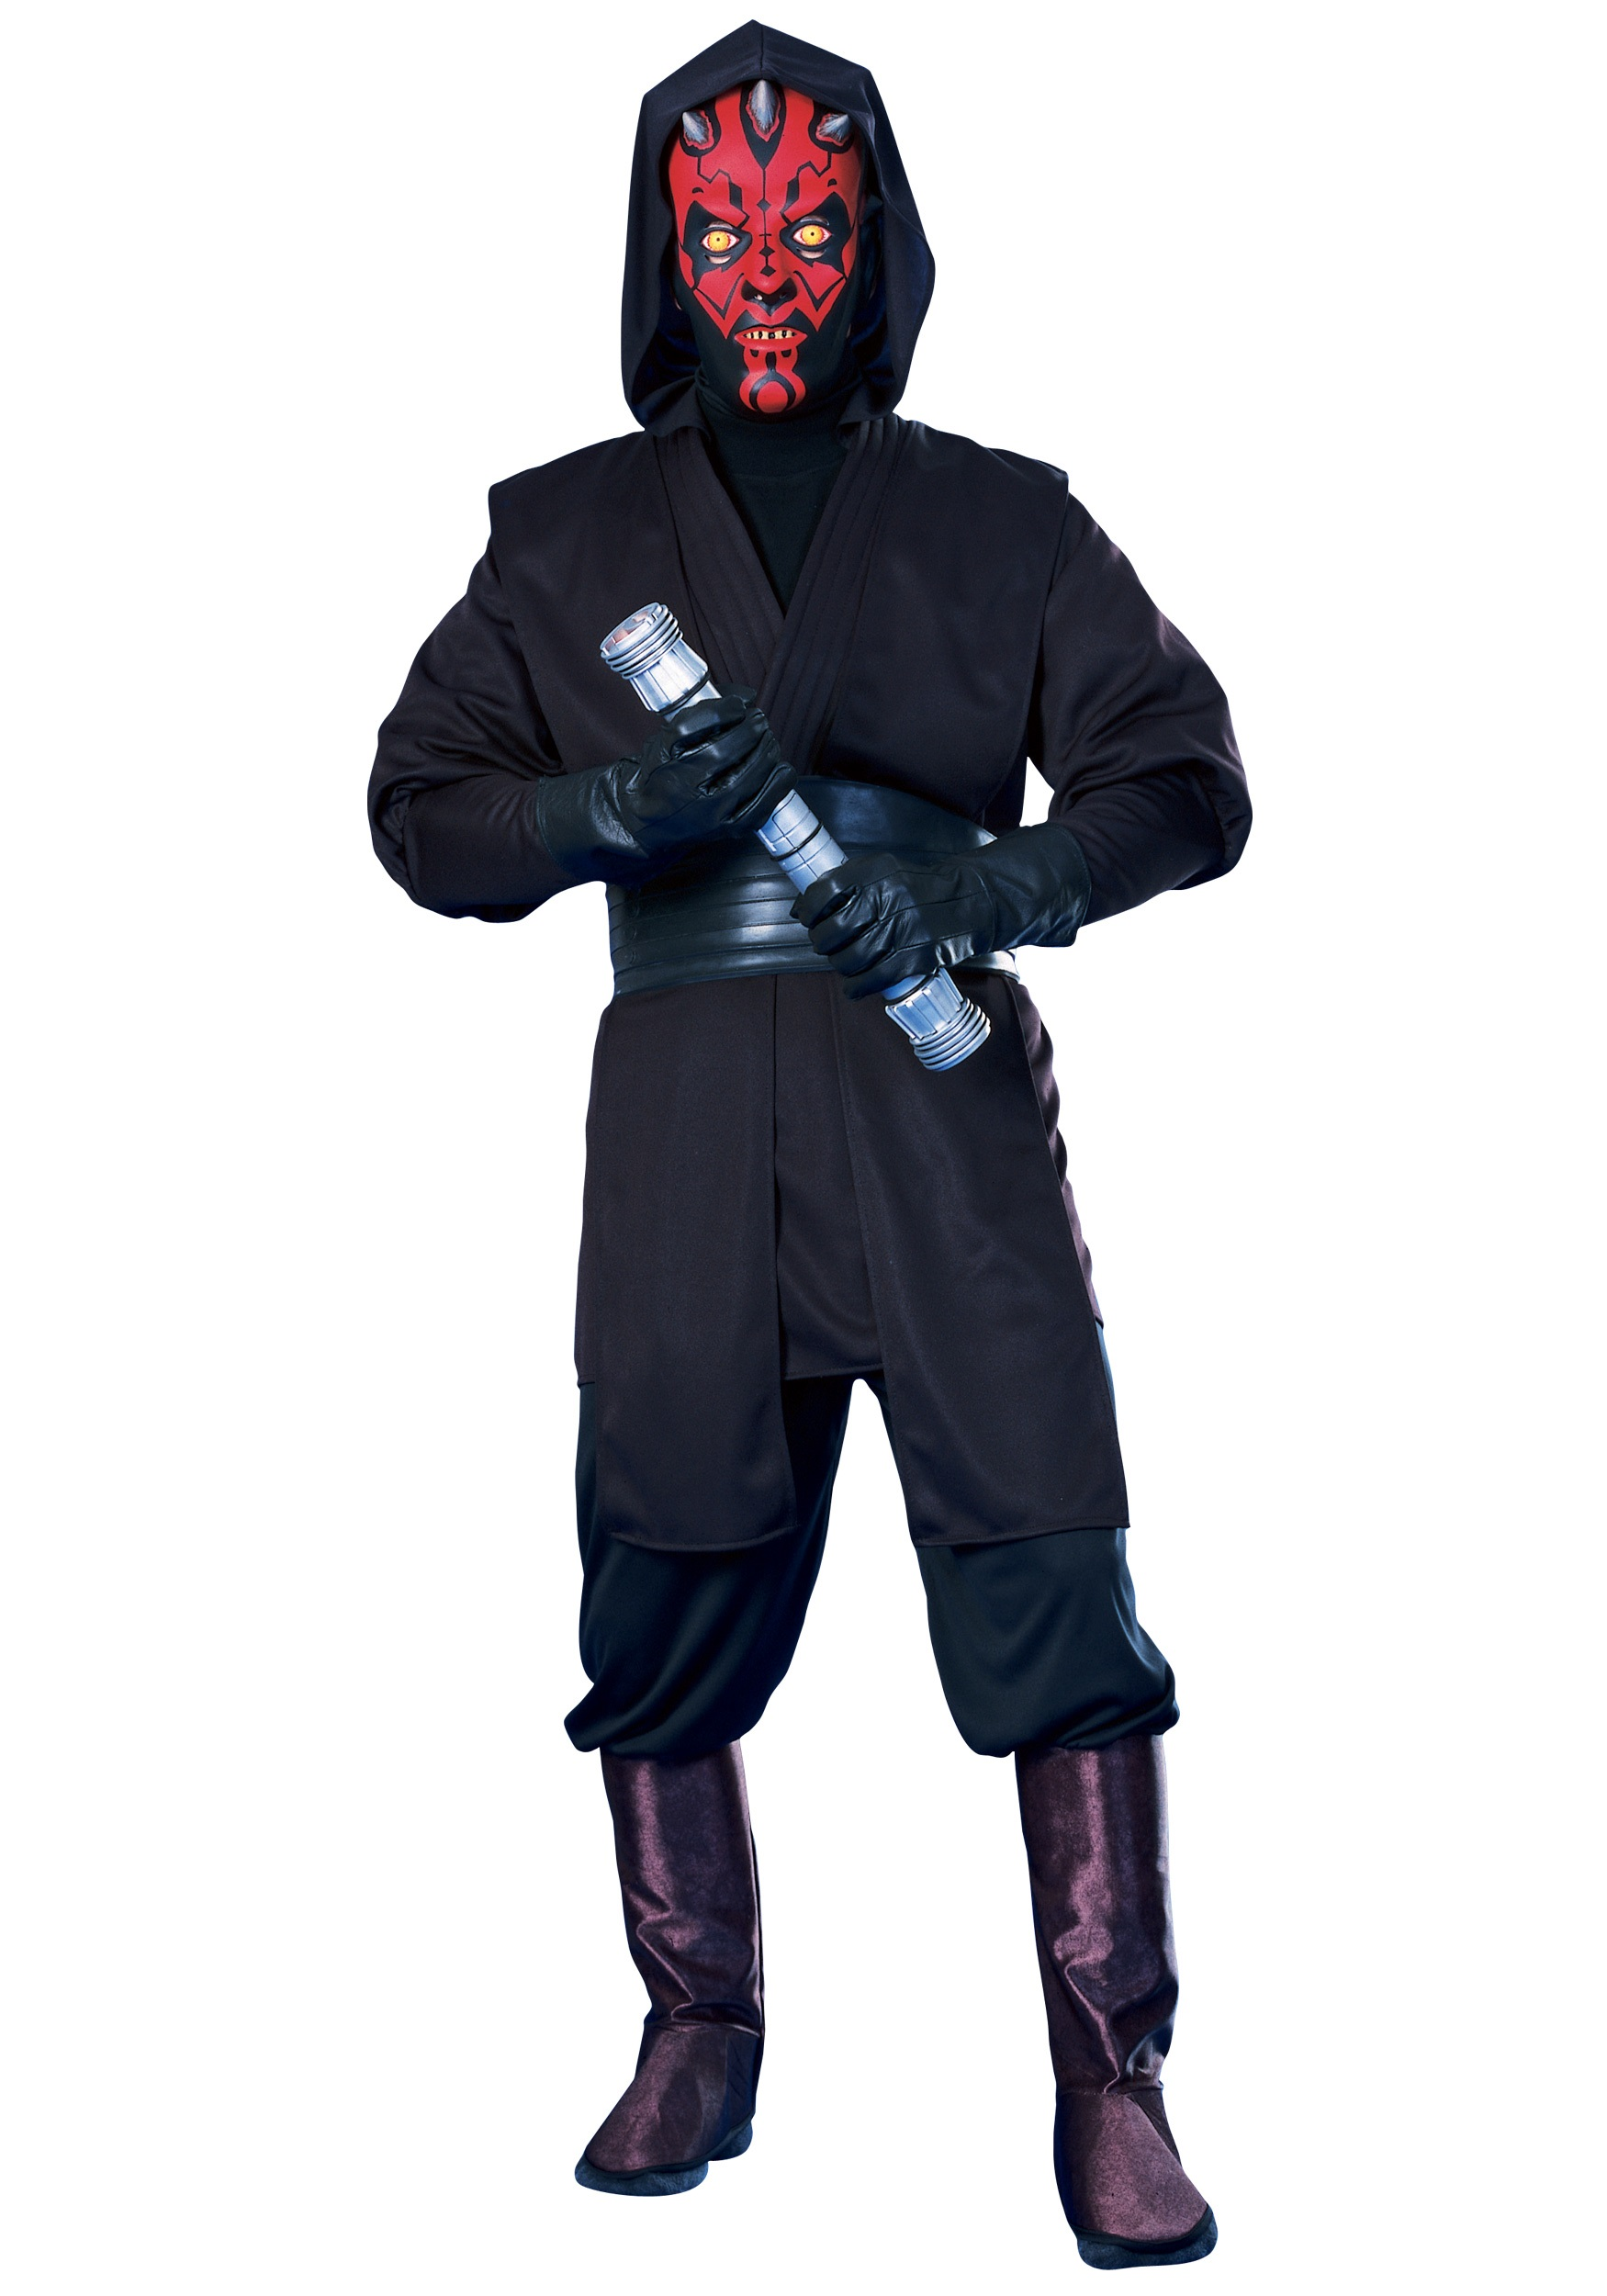 Darth Maul Costumes - Child, Kids, Adult Costume Star